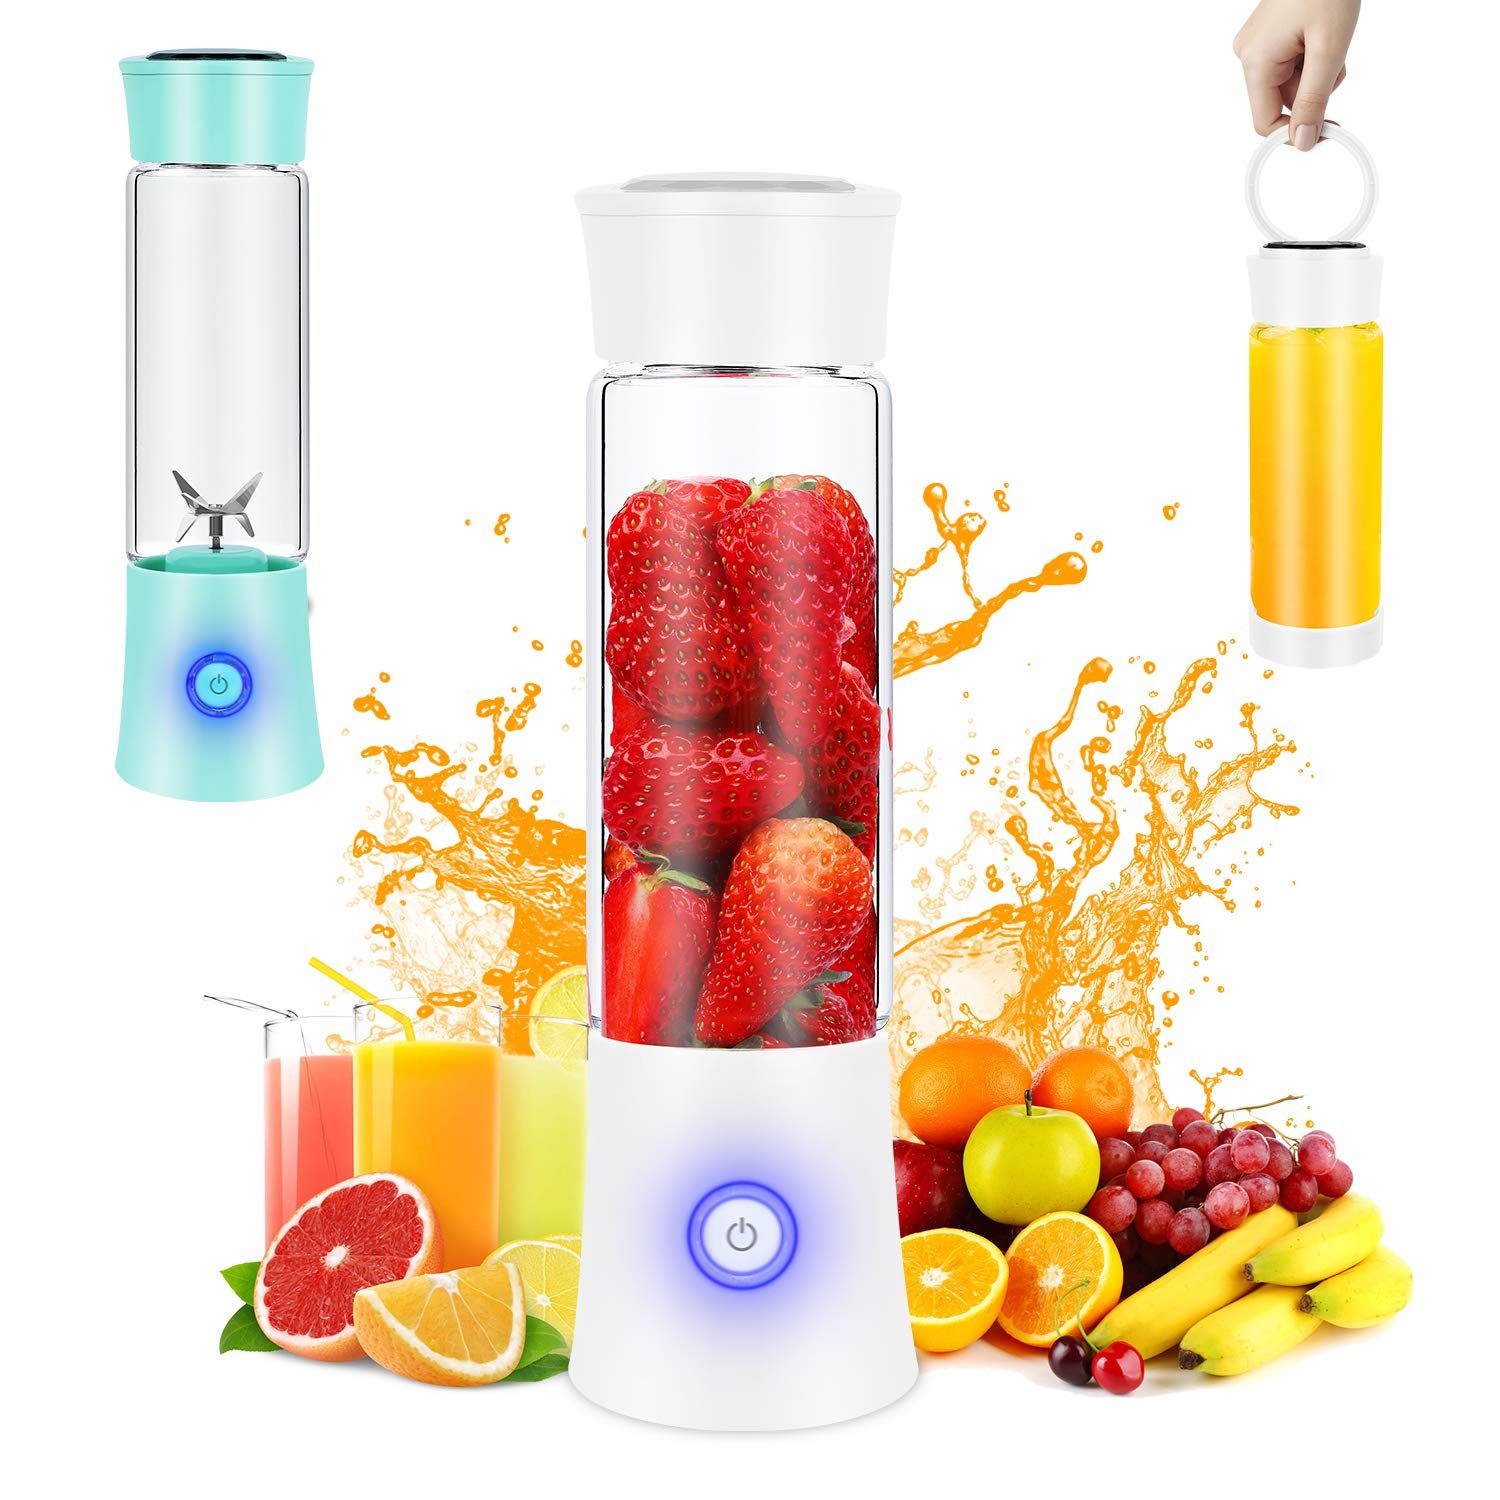 Portable Blender, Personal Blender for Shakes and Smoothies, 6 Stainless Steel Blades Cordless USB Rechargeable Juicer Cup with 4000mAh Batteries, Handheld 16oz Mini Travel Blender Small Fruit Mixer Detachable for Home Office Gym Outdoor, White